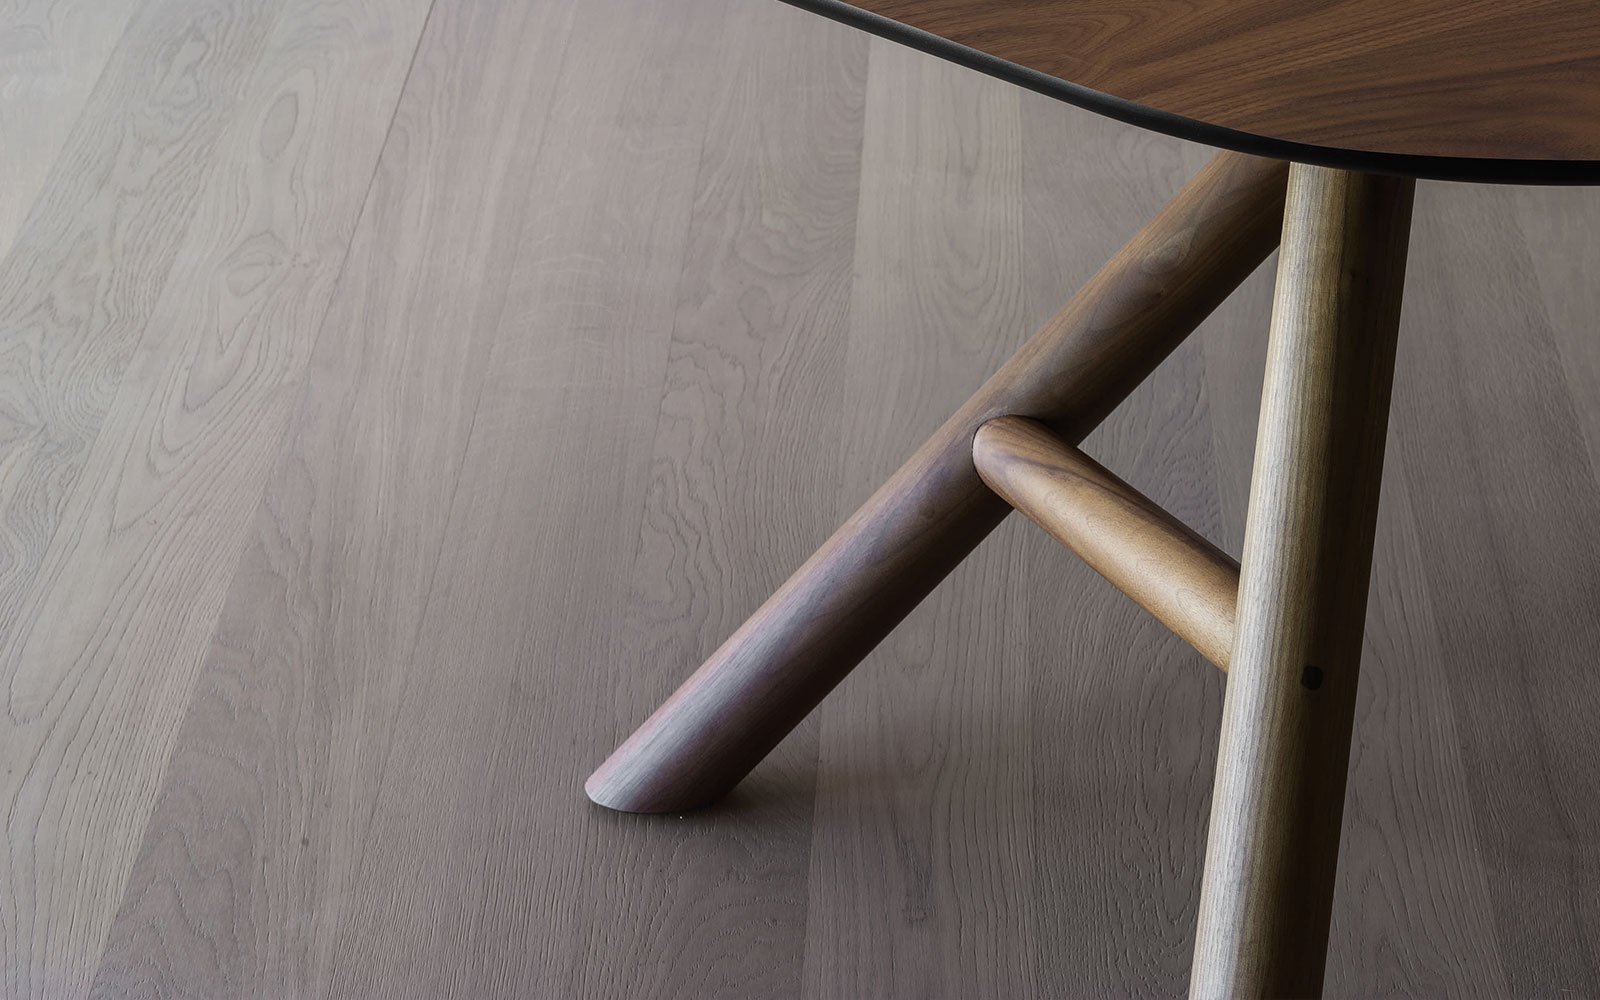 Otto-Contemporary-Dining-Tablewith-wooden-legs